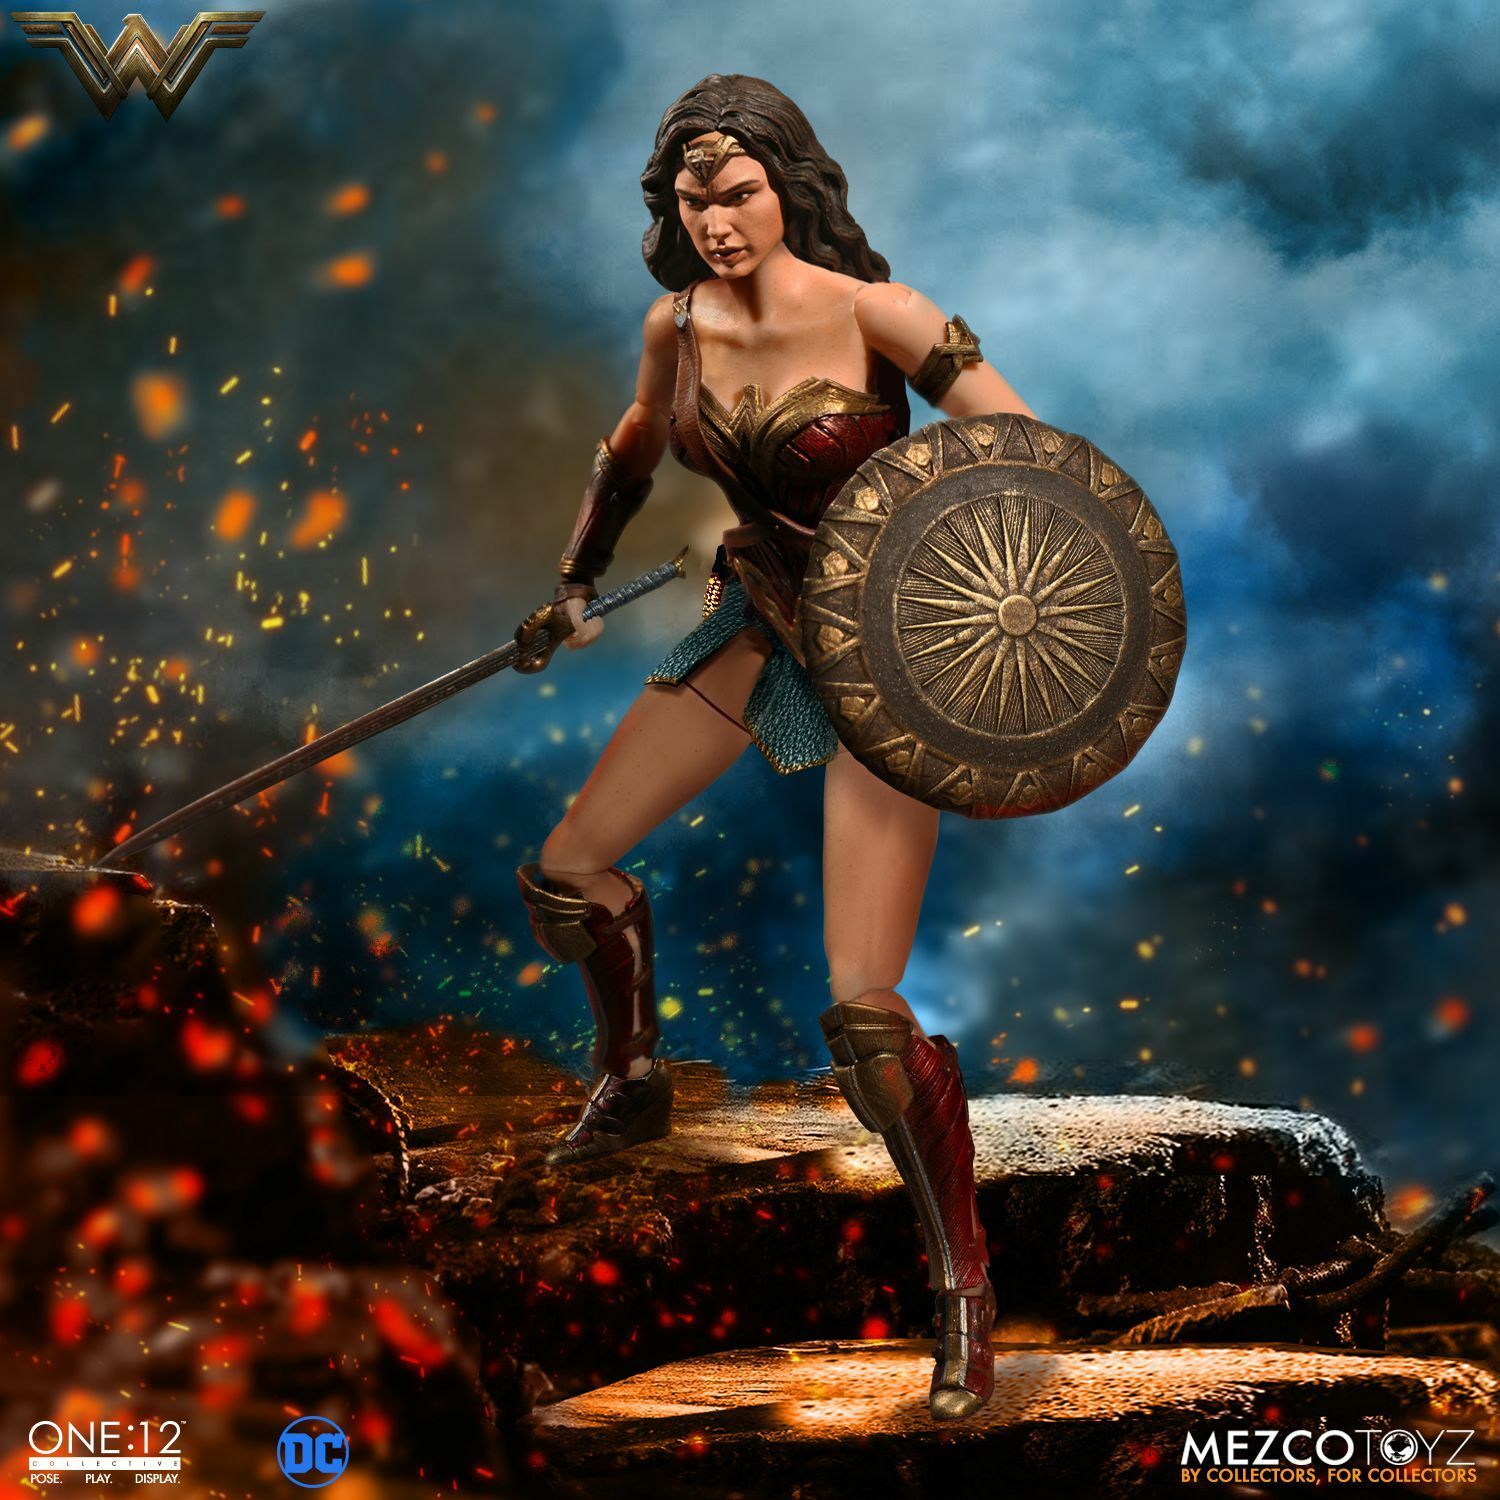 Mezco giocattoloz One 12 Collective DC Comics Wonder donna 112 Scale 6 cifra In He